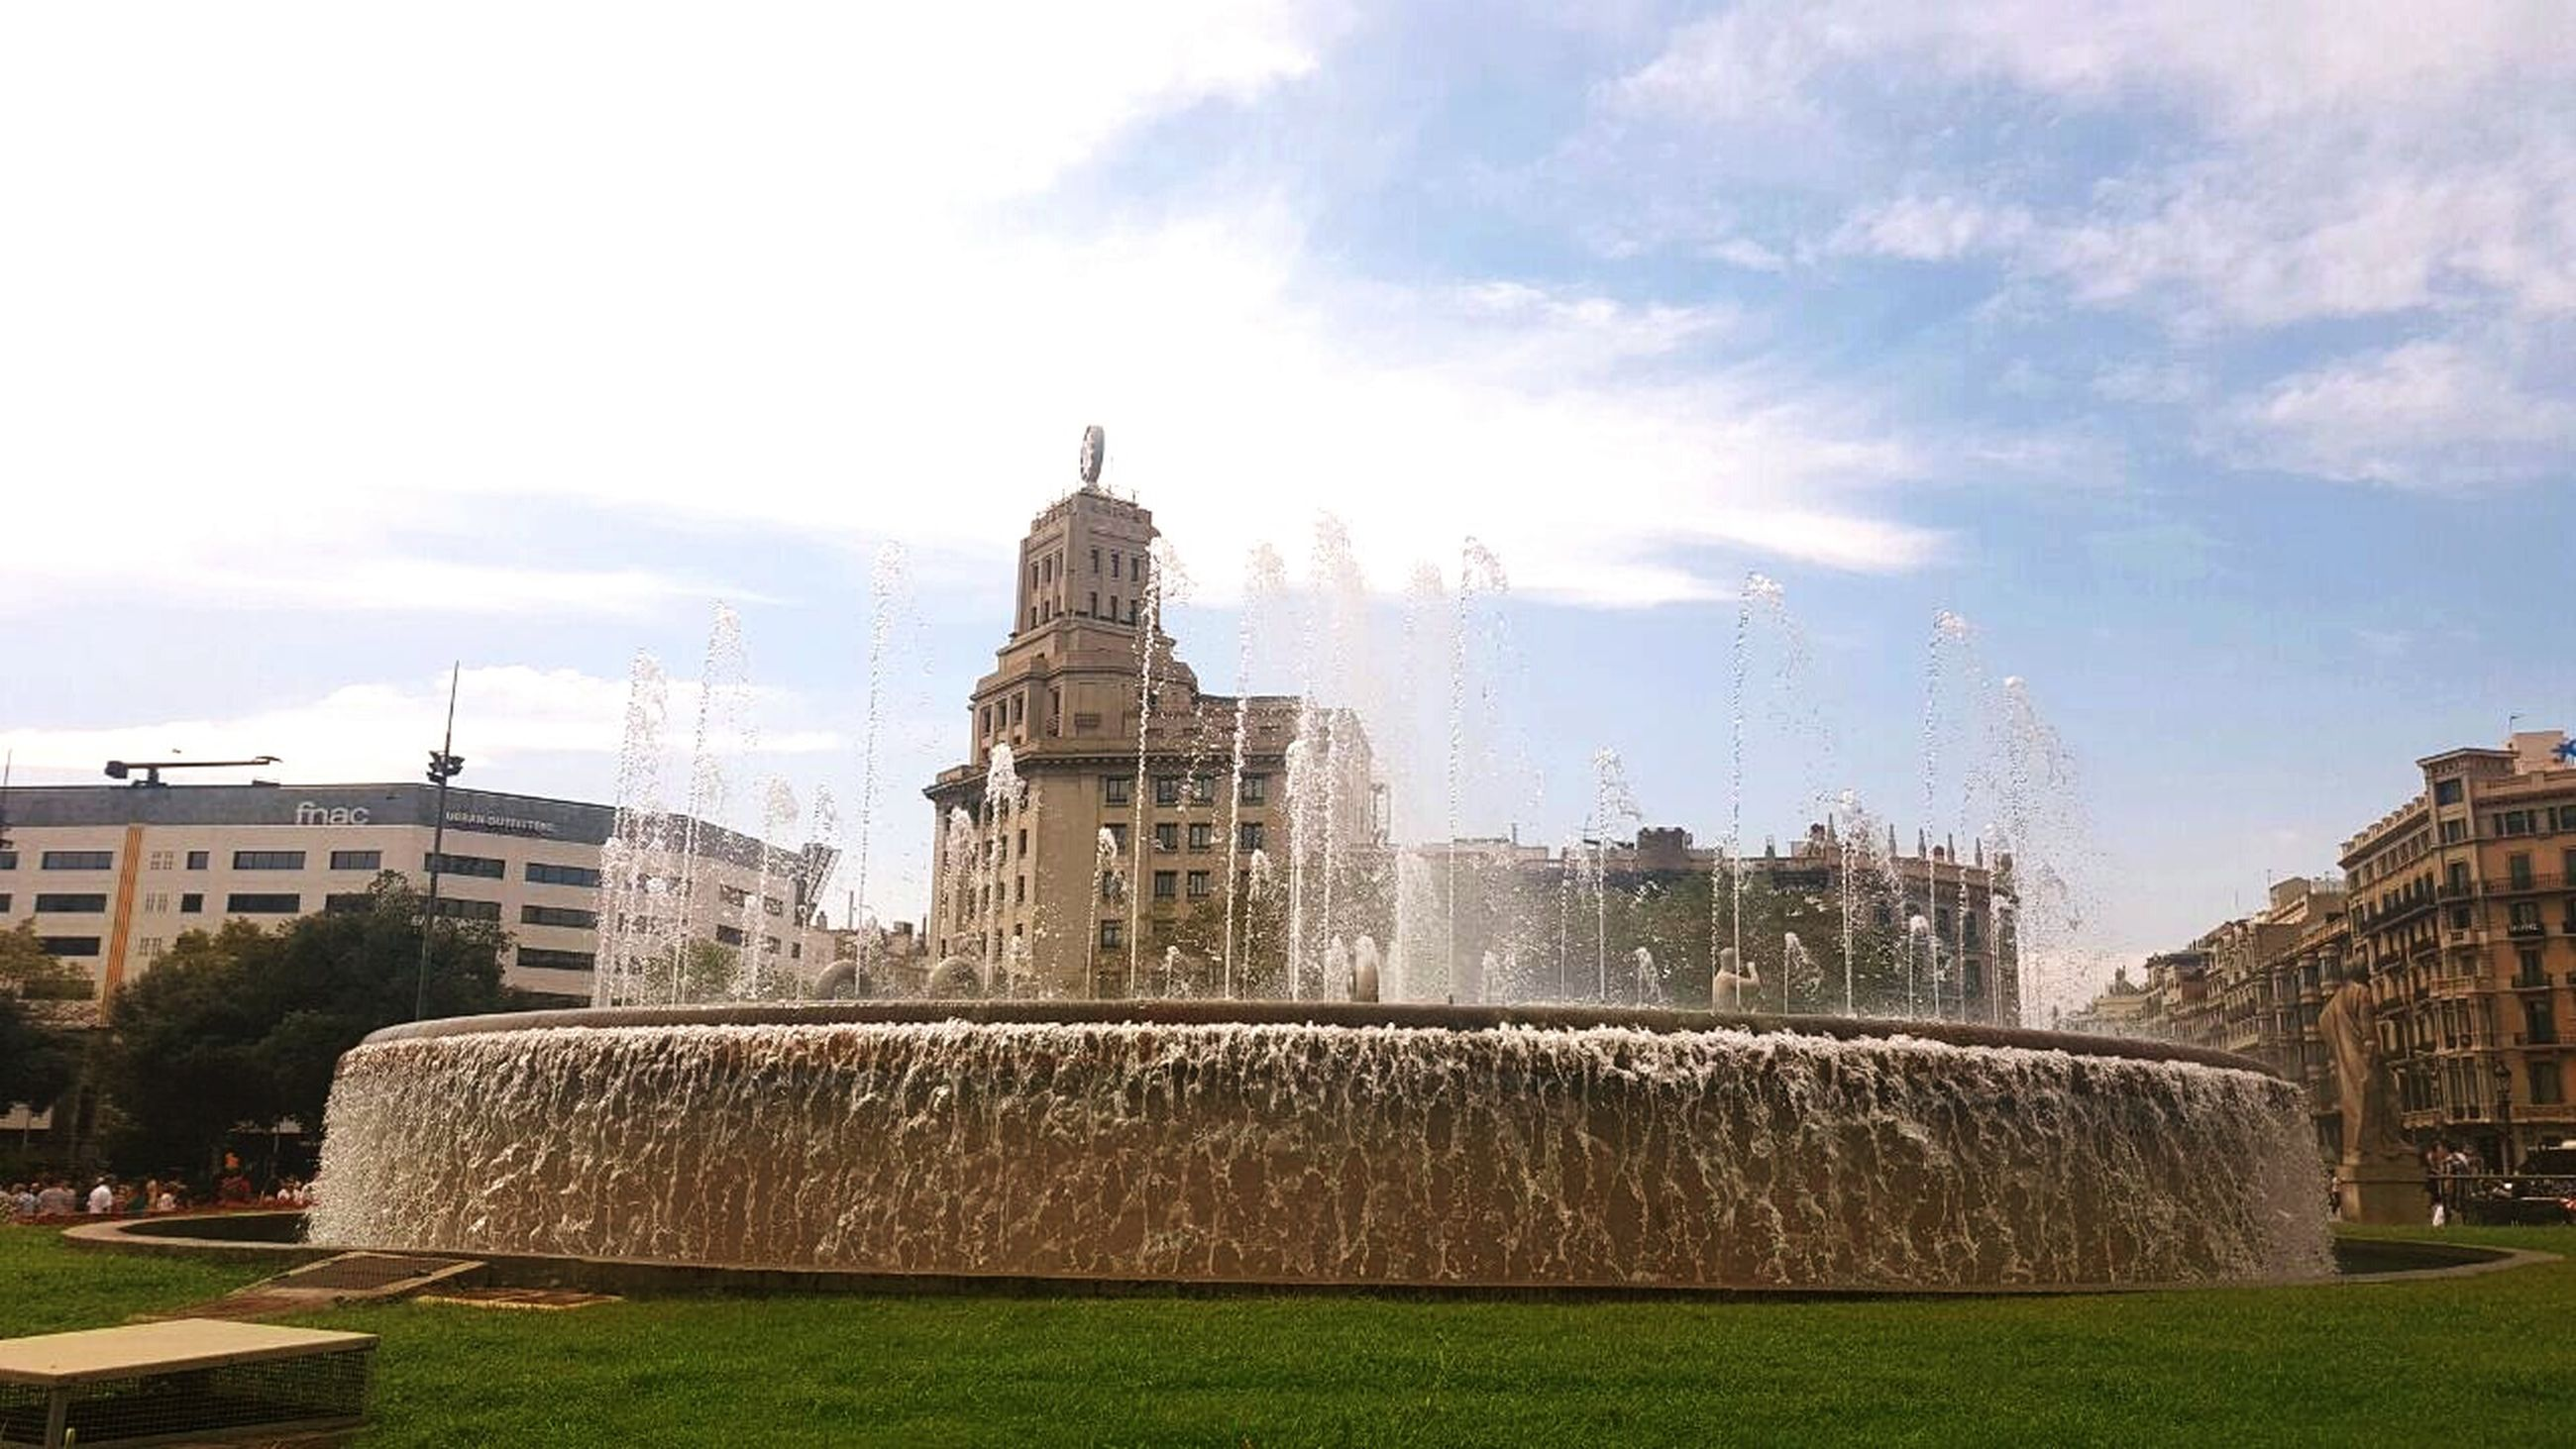 architecture, built structure, motion, building exterior, grass, fountain, spraying, lawn, sky, spray, splashing, dome, lens flare, water, travel destinations, cloud, day, green color, parliament building, sunbeam, facade, outdoors, cloud - sky, sun, growth, history, government building, garden, famous place, the past, arch, government, city life